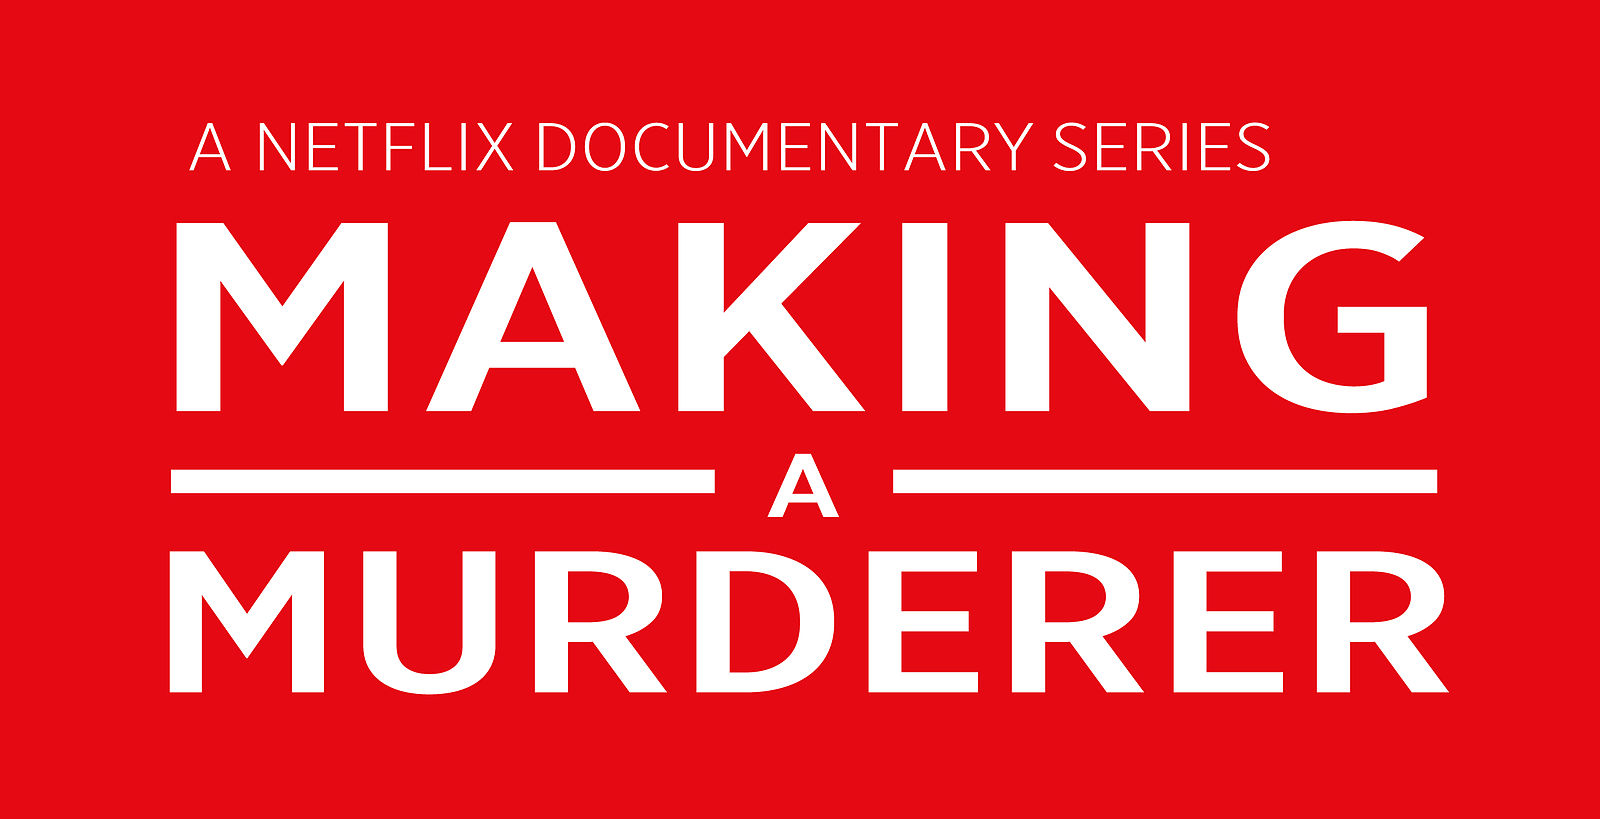 Supreme Court refuses to hear Netflix's 'Making a Murderer' appeal